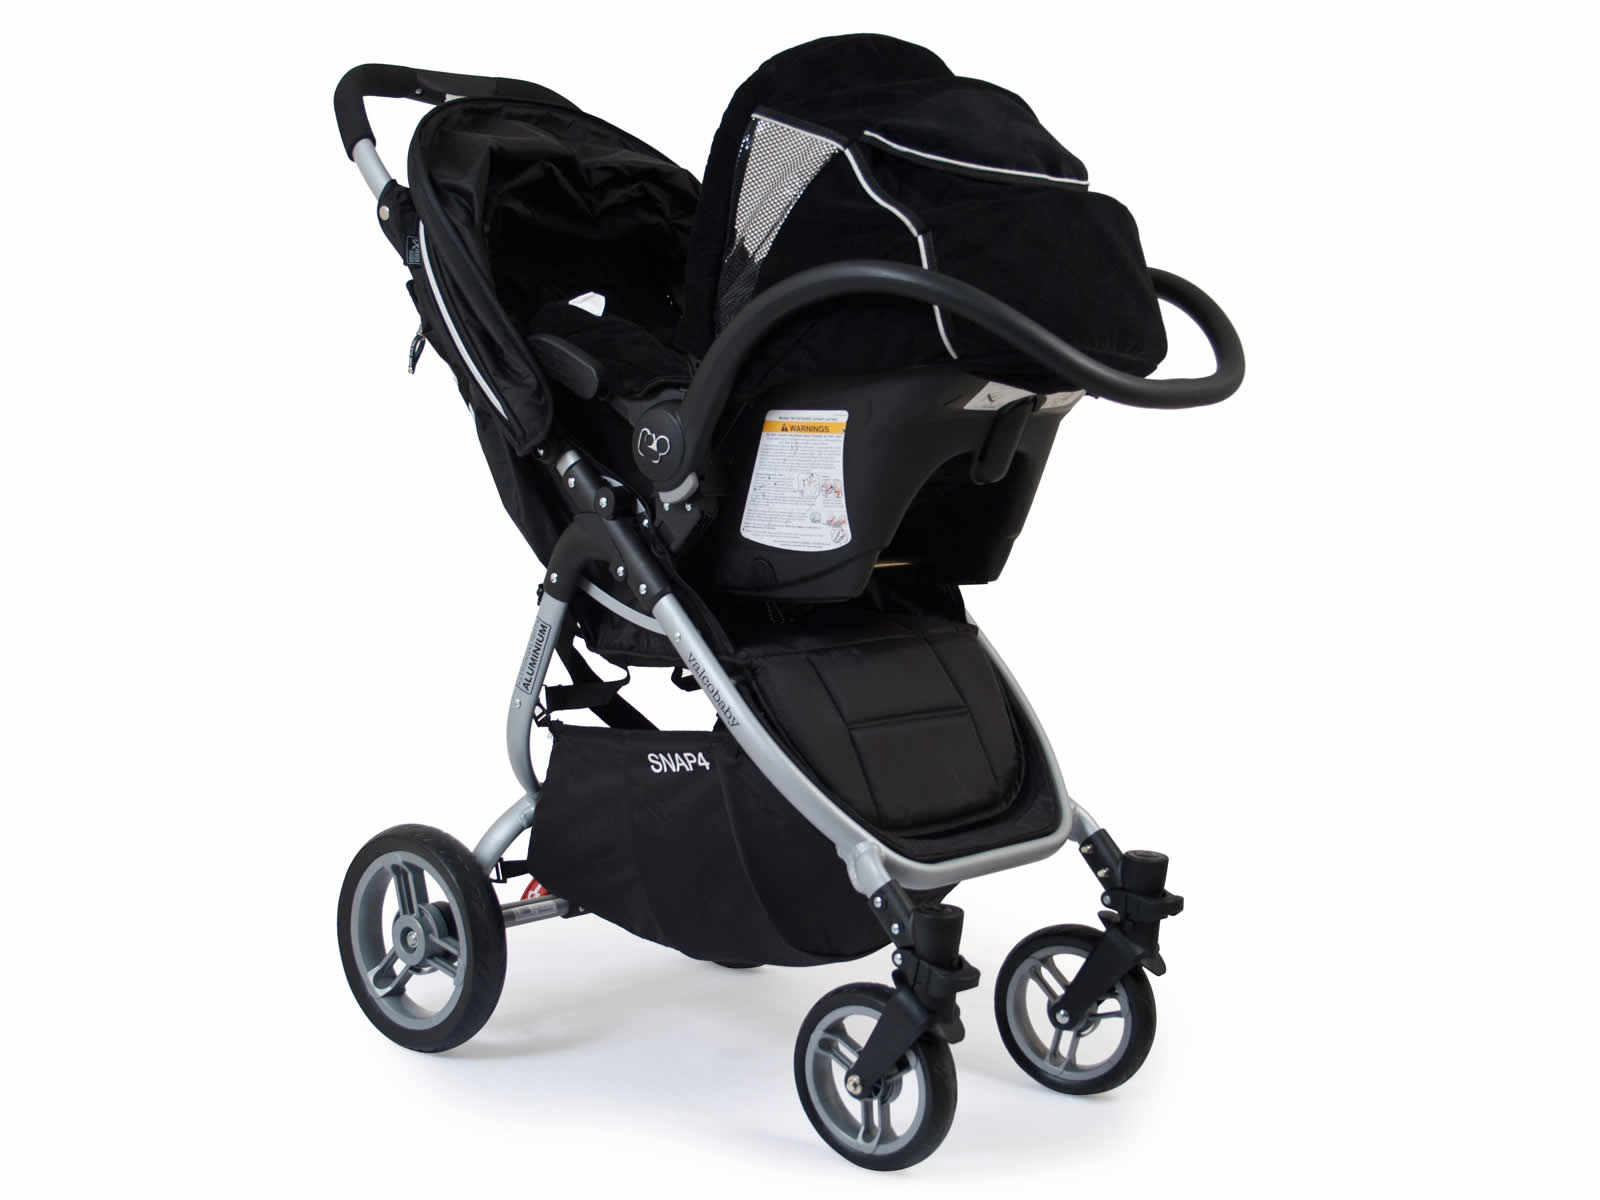 Maxi Cosi Adaptor for Snap and Snap4